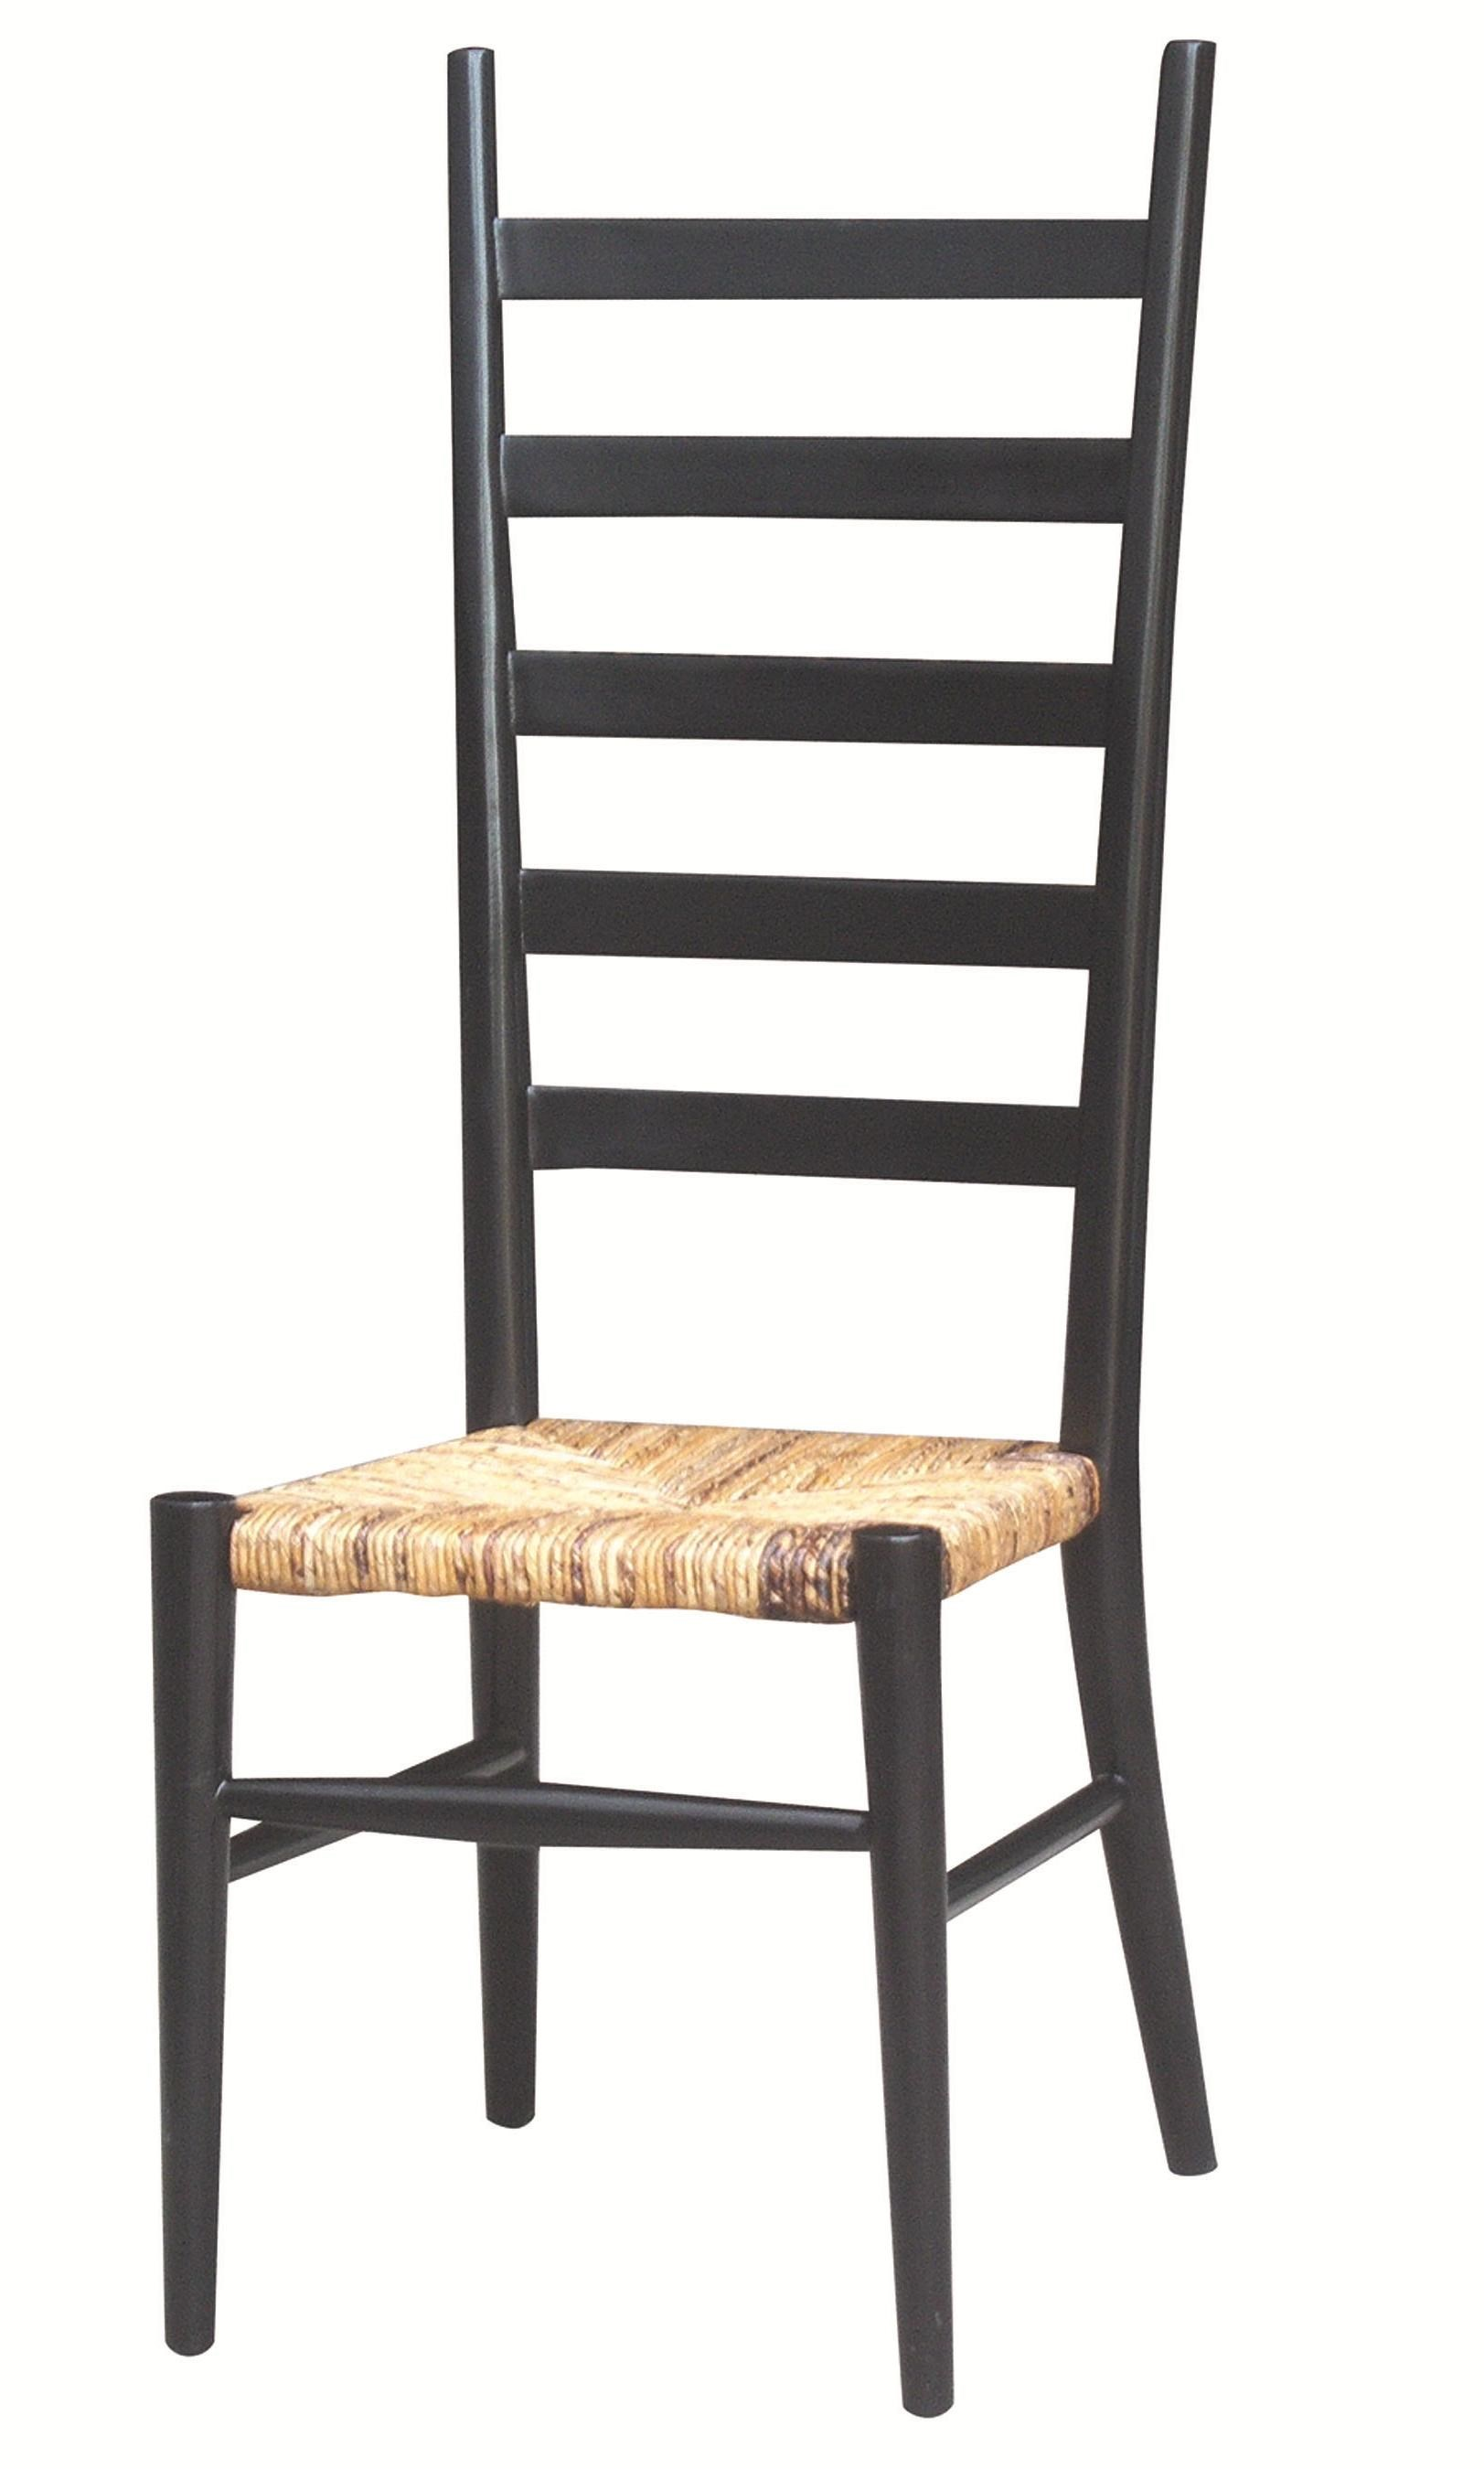 Four Hands Grass Roots Tall Ladder Back Dining Chair W/ Woven Seat